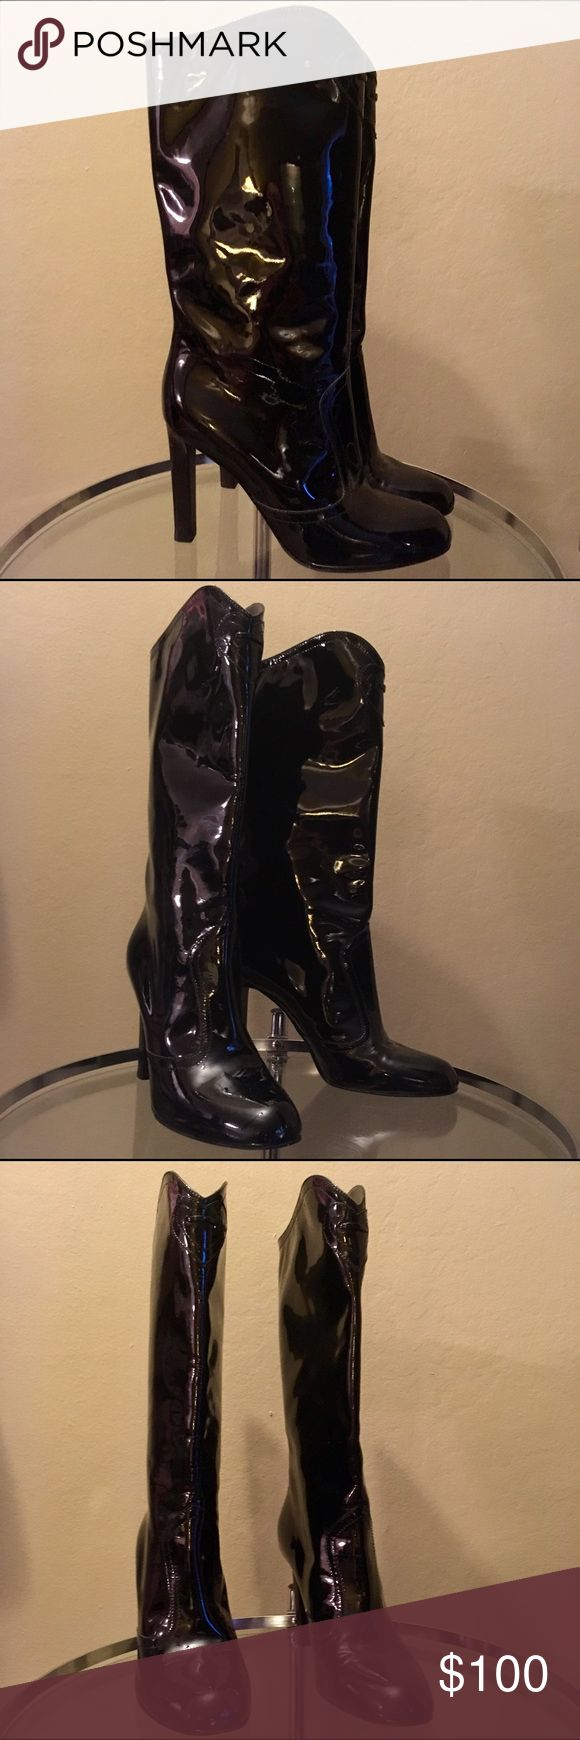 """Like new! Emporio Armani Patent Leather Boots Like new! Emporio Armani black patent leather heeled boots w/ front tassels (removed, but included and shown in last image) in a 1-time worn/like new condition size 6.5. Measurements: 13.75"""" heel, 14"""" shaft Emporio Armani Shoes Heeled Boots"""